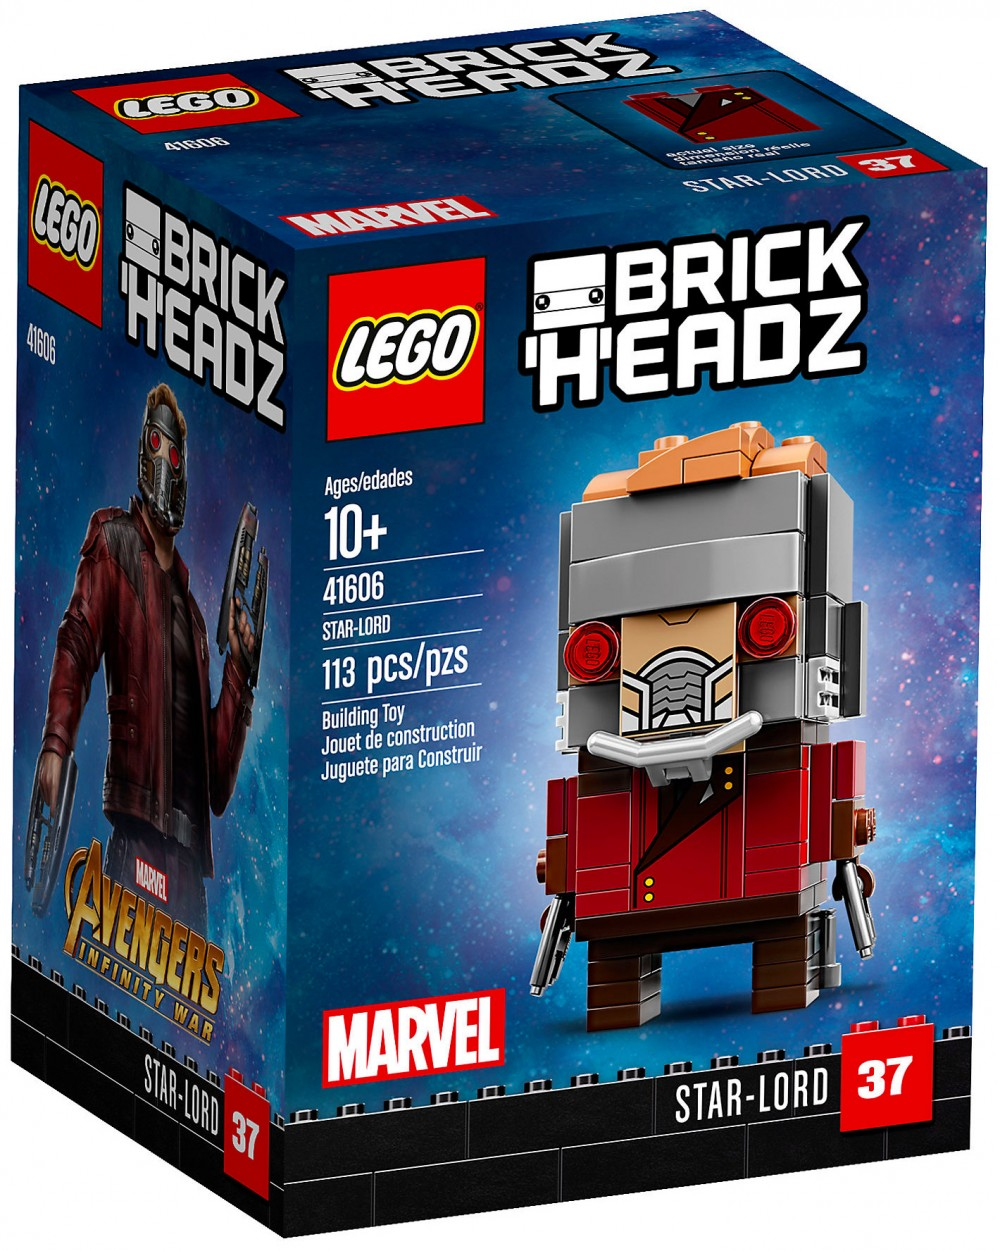 Nouveau LEGO BrickHeadz 41606 Star-Lord Avril 2018